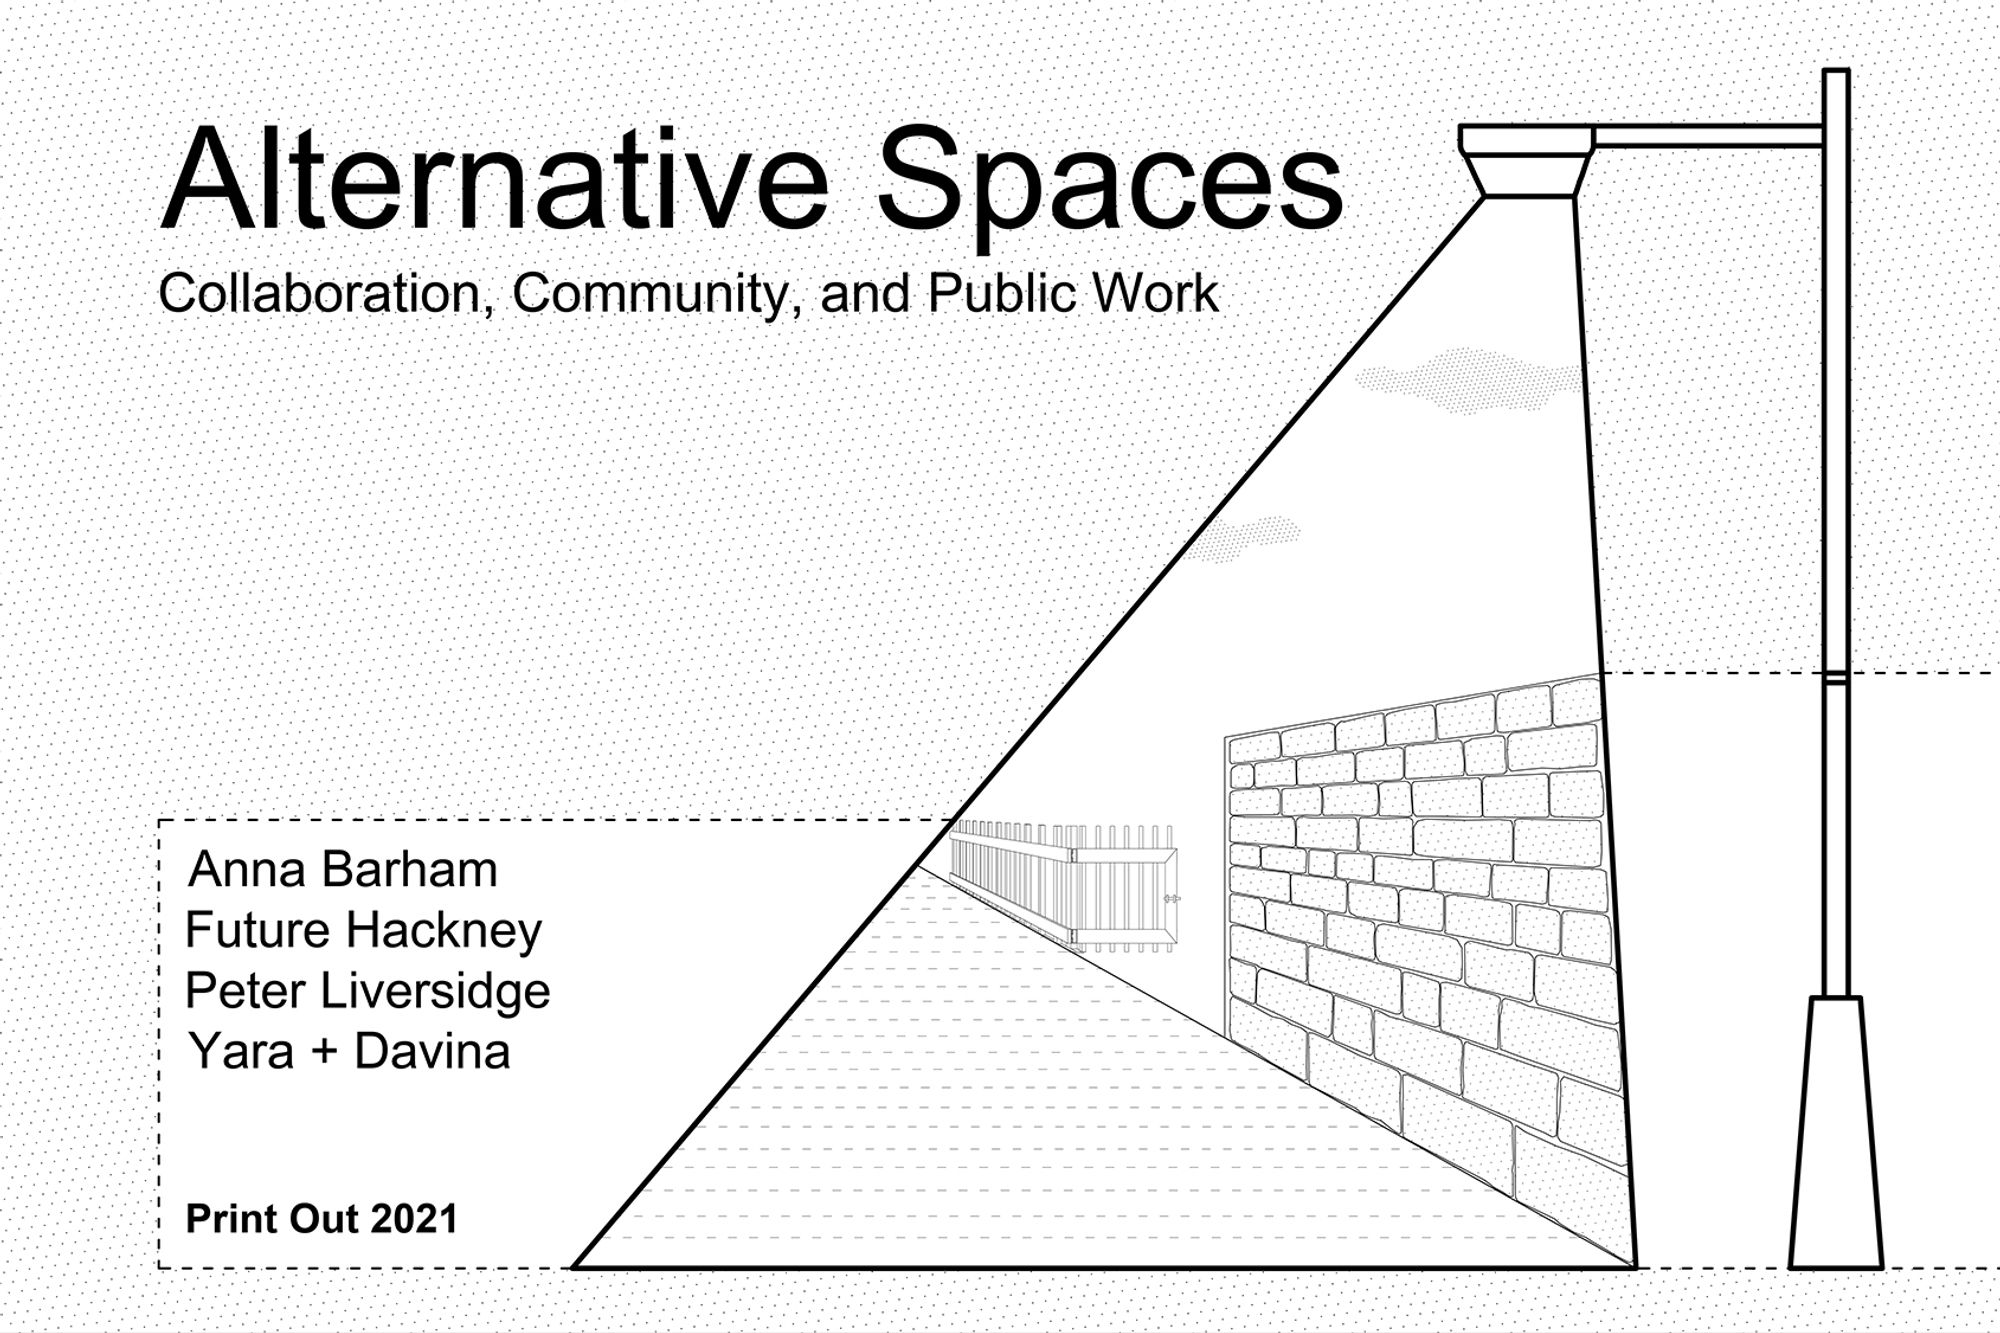 Print Out 2021 // Alternative Spaces: Collaboration, Community, and Public Work-image